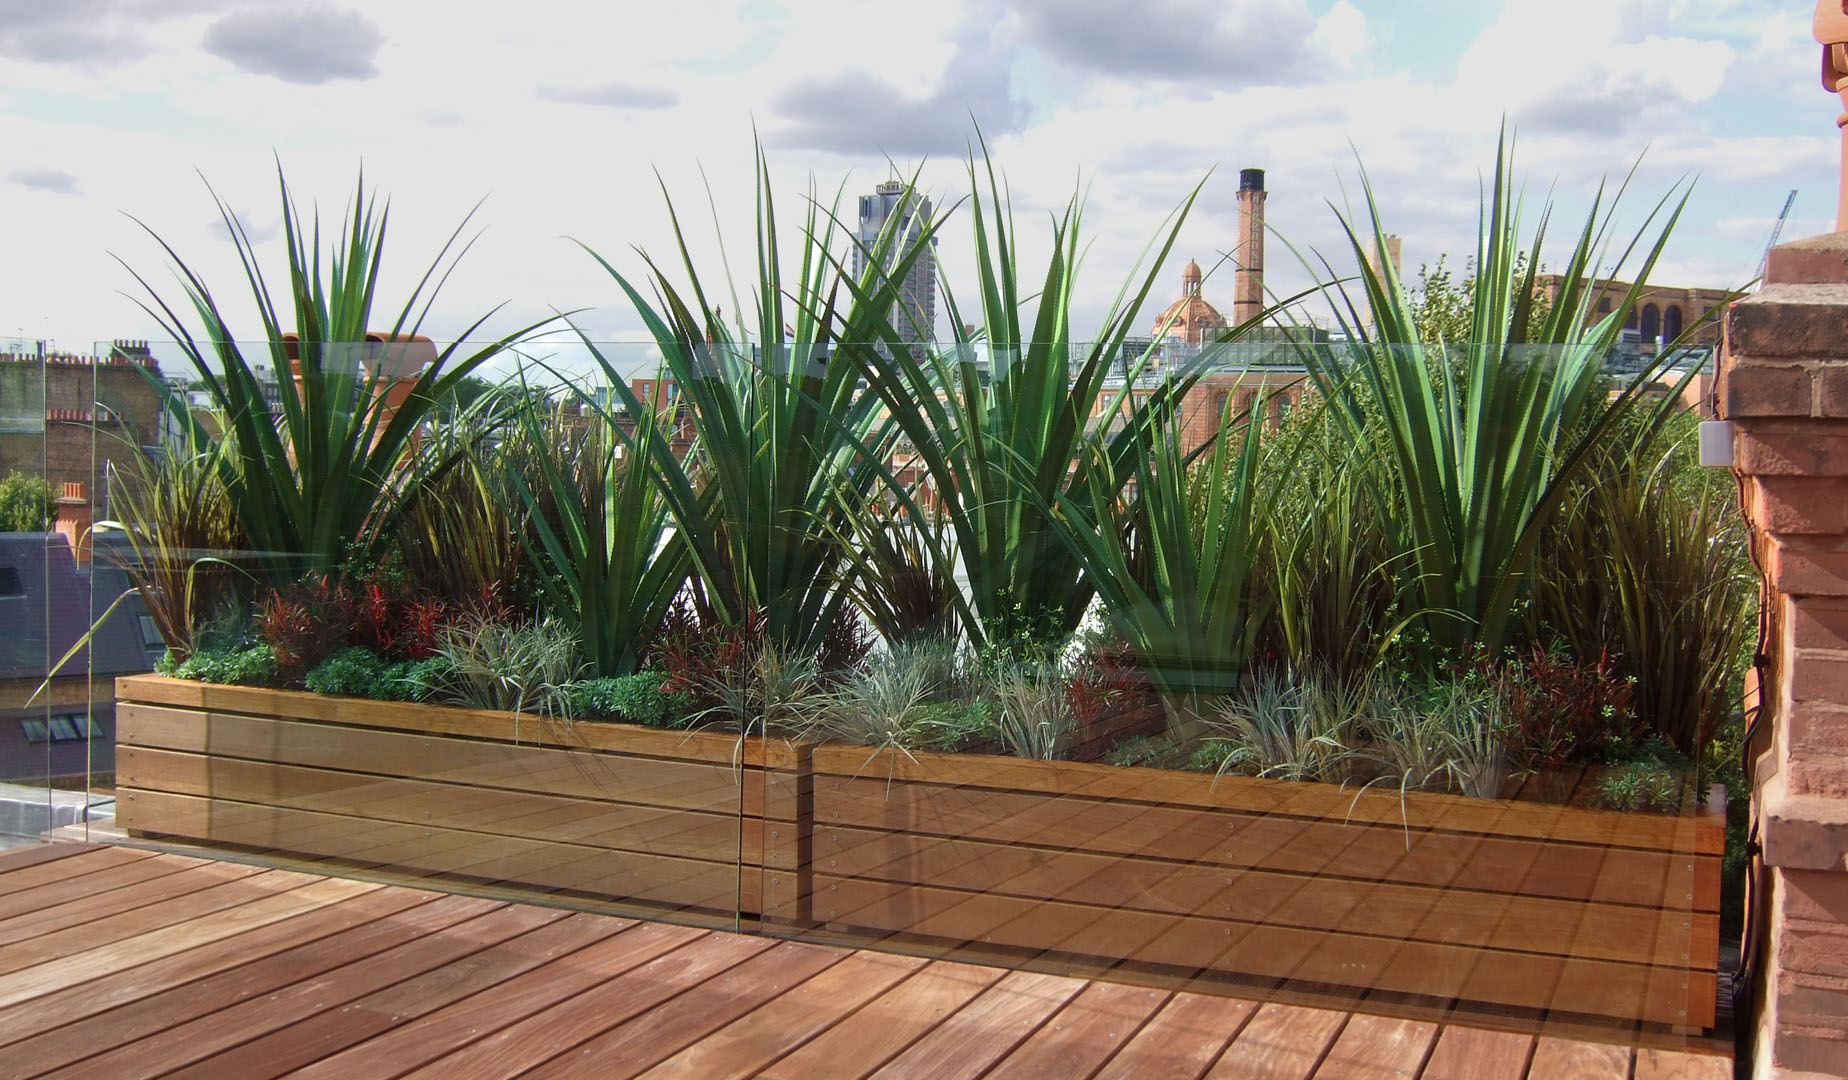 722 fake landscapes roof SW3 pandanas and grasses